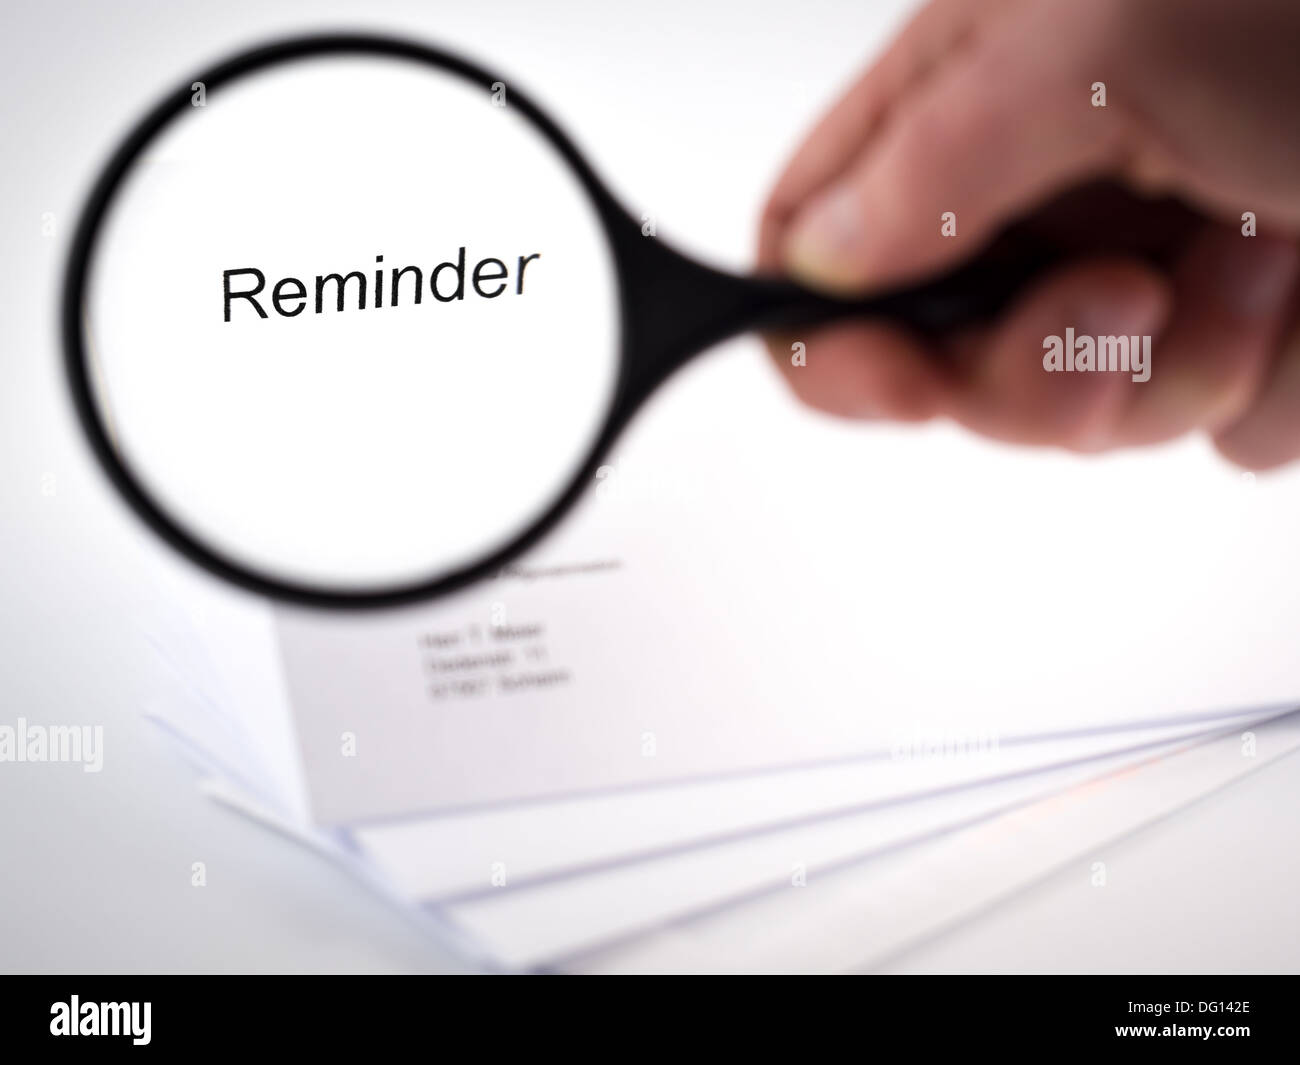 Cover letter with the word Reminder in the letterhead - Stock Image